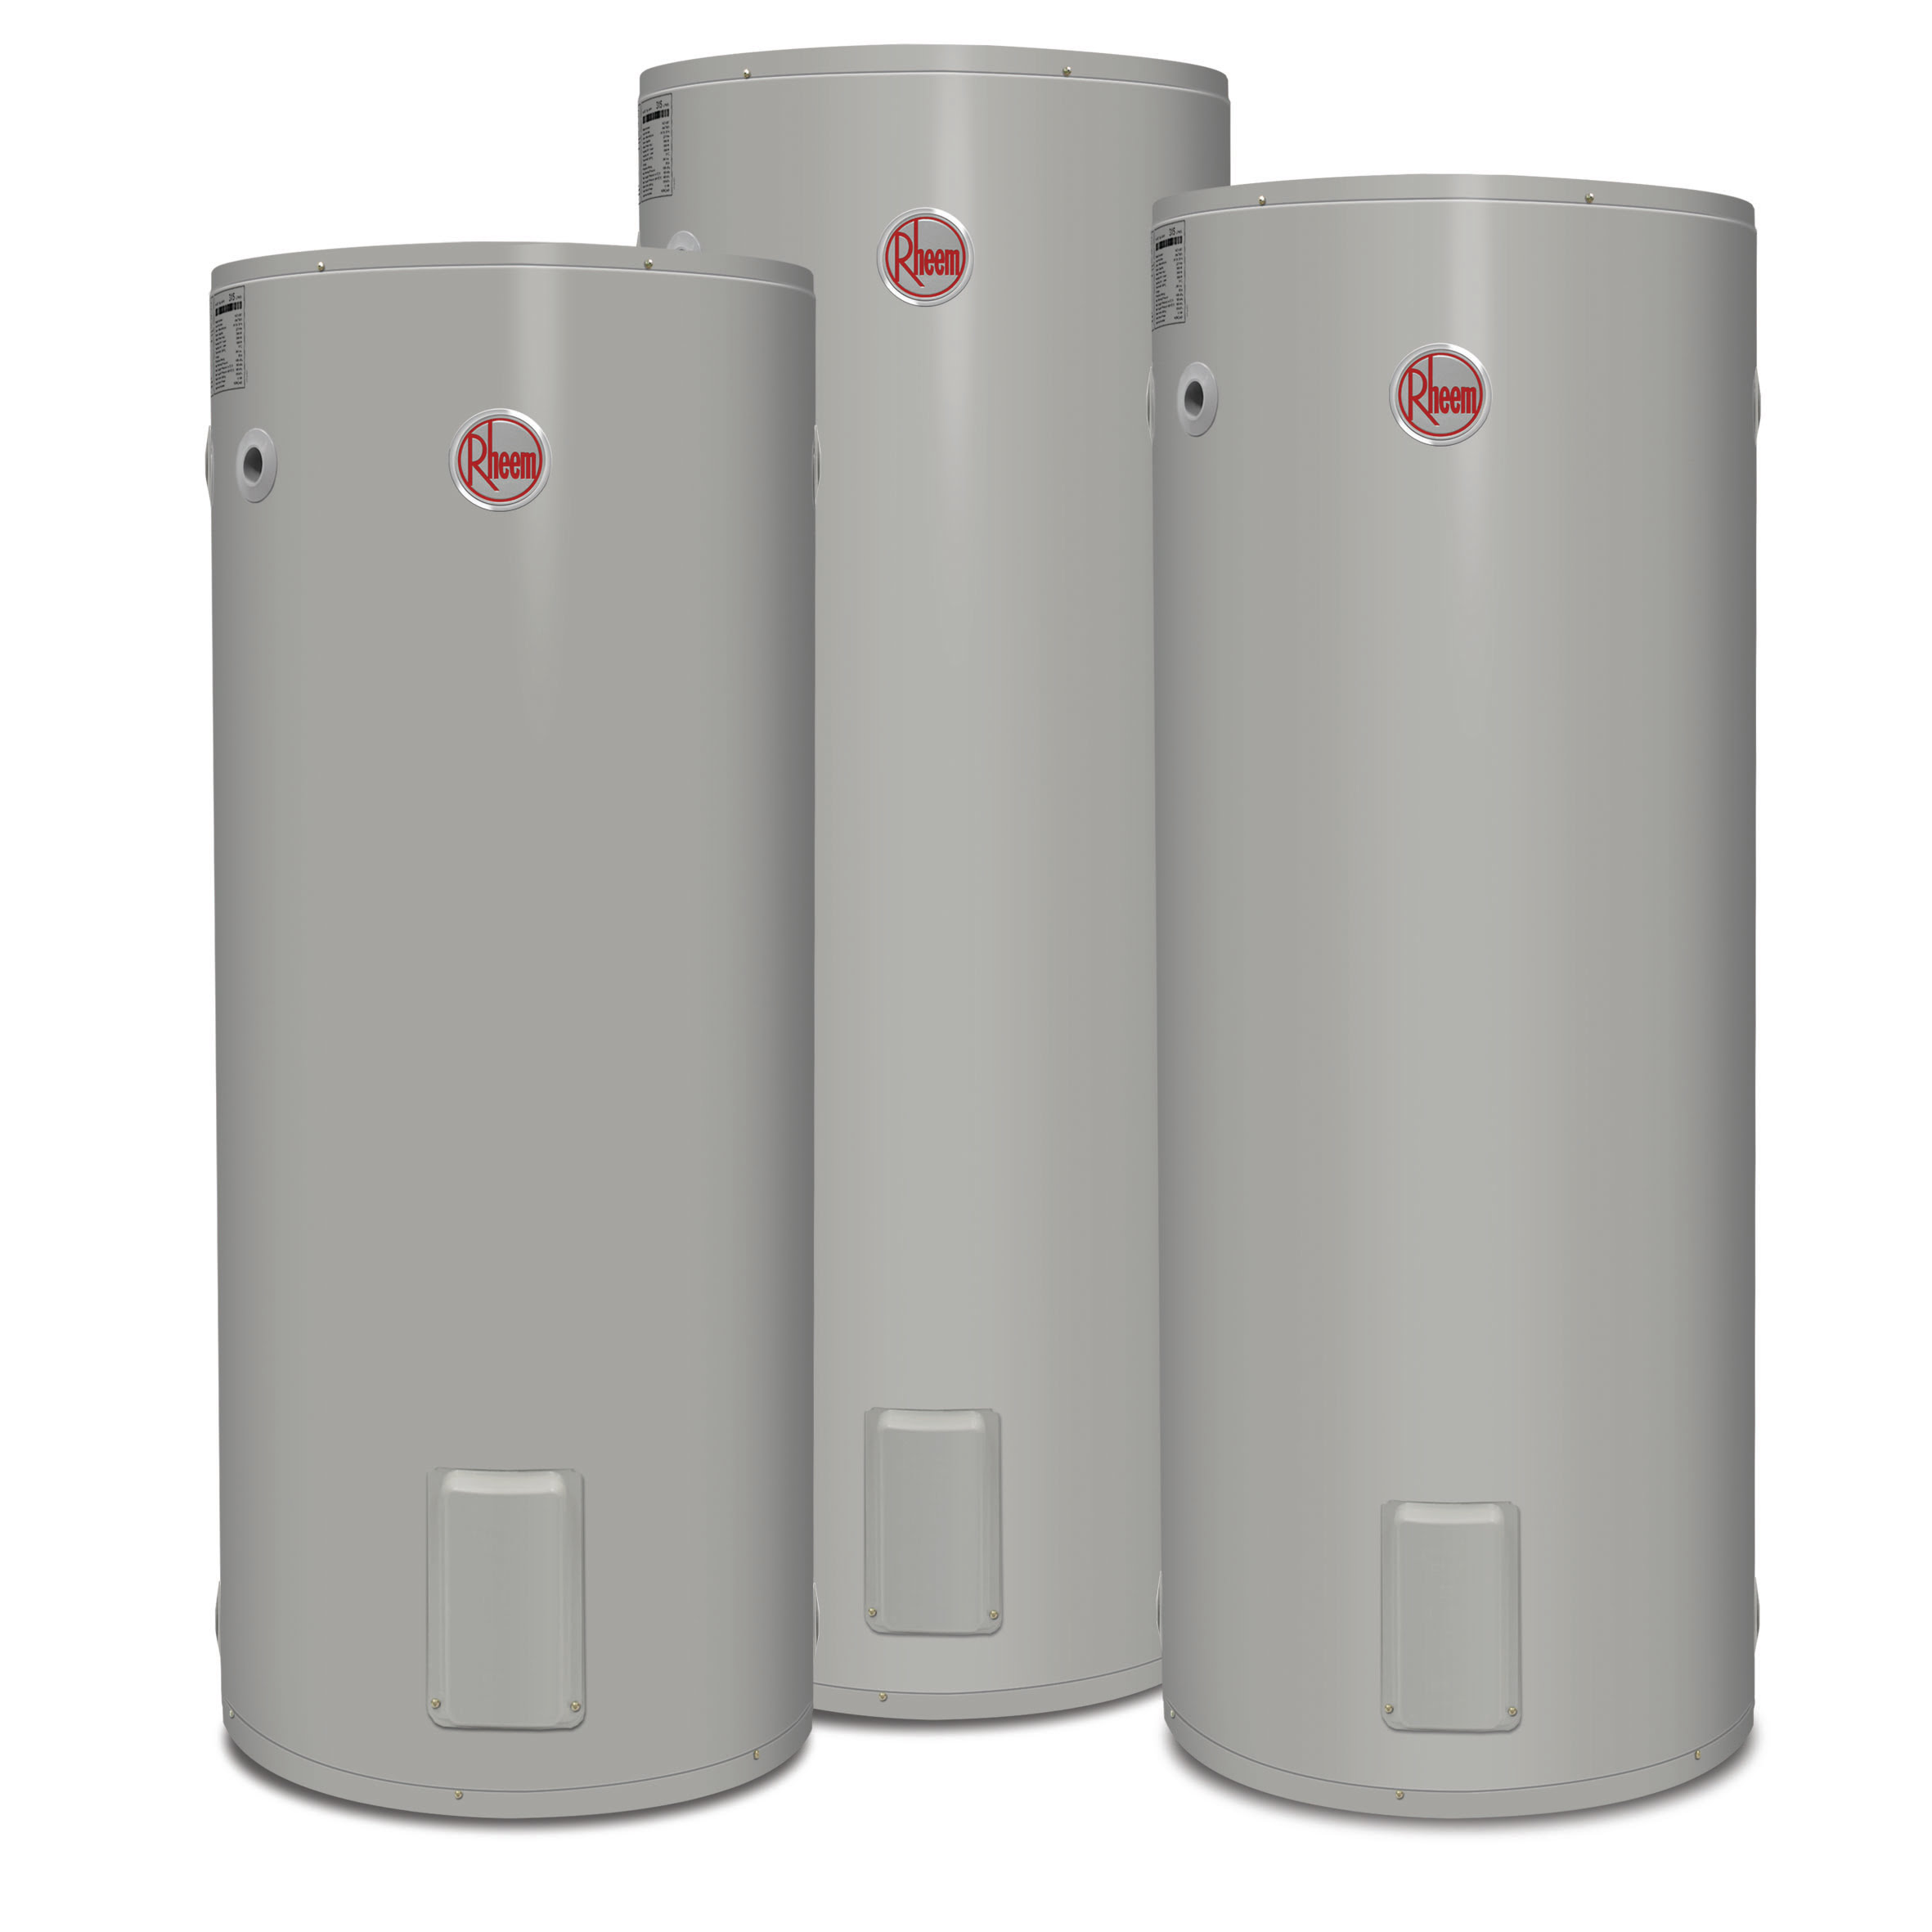 Rheem Electric Water Heaters  Authorised Agents. List Of Expiring Domain Names. Chicago School Of Business Call Dish Network. Burglar Alarm System Components. Healthcare Economics Degree Future Of Syria. Clinton Christian Academy Upload Video To Web. Rehab Centers In Columbus Ohio. Uc Davis Online Courses Top Video Ad Networks. Teacher Salaries Illinois Plumbing Green Bay